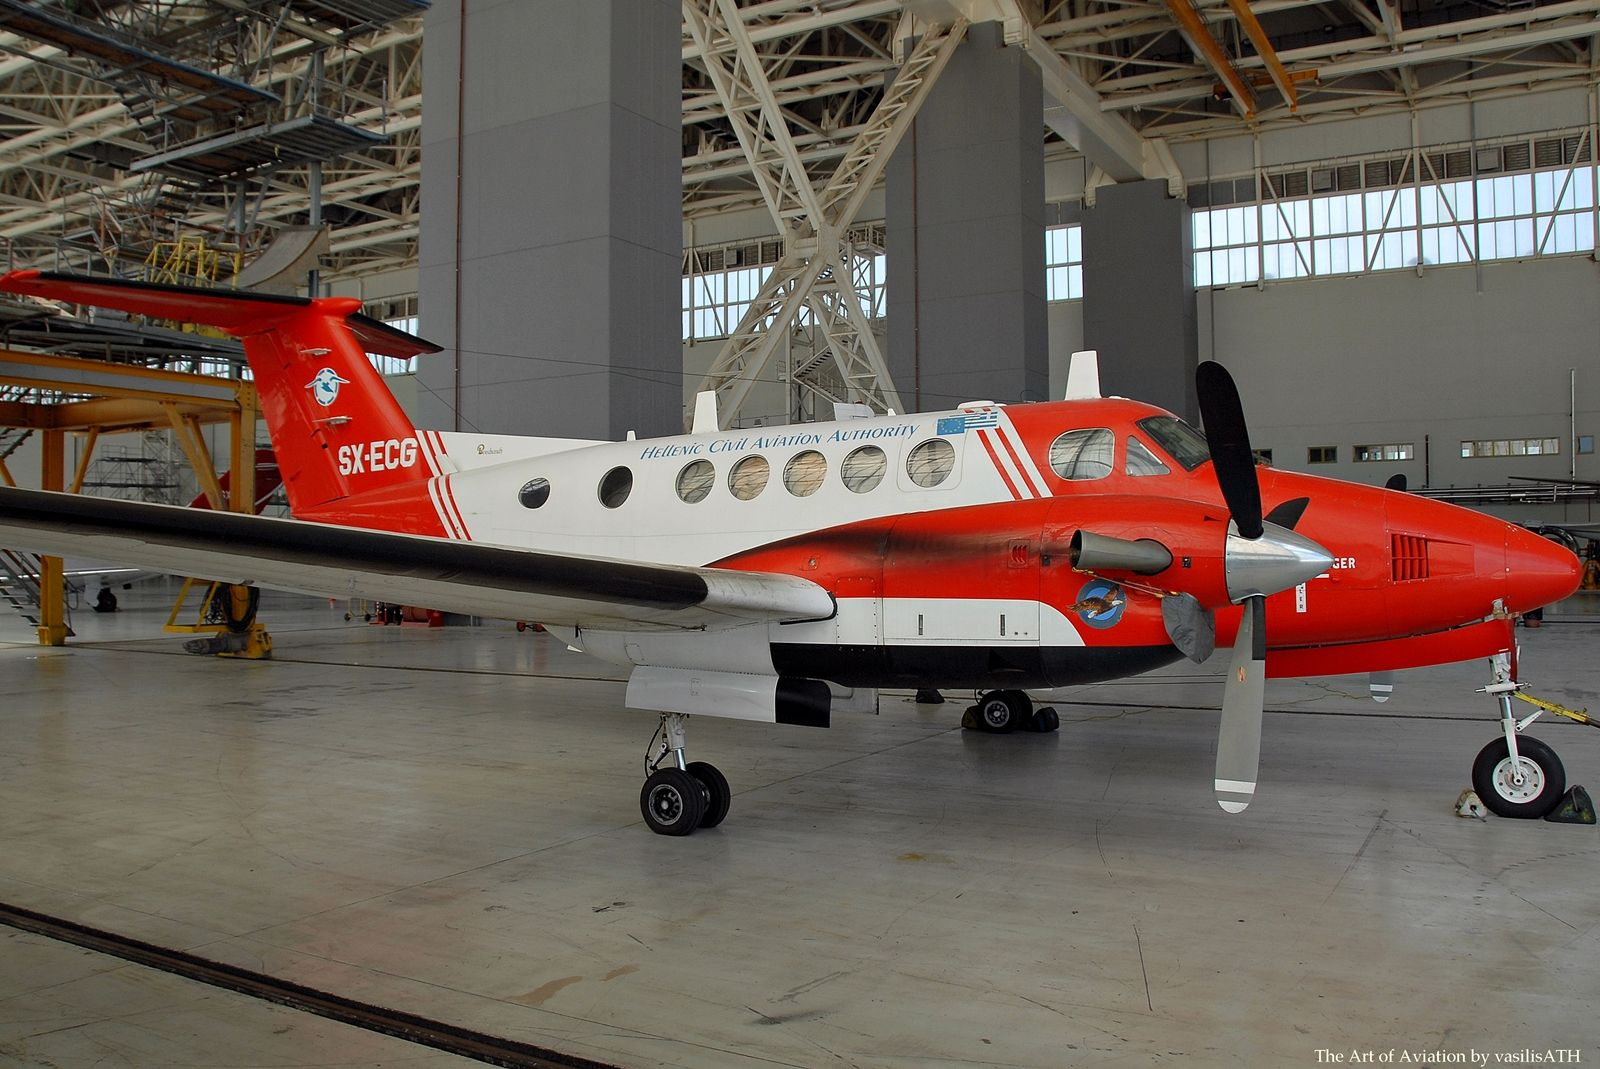 Hellenic Civil Aviation Authority Beechcraft 200 Super